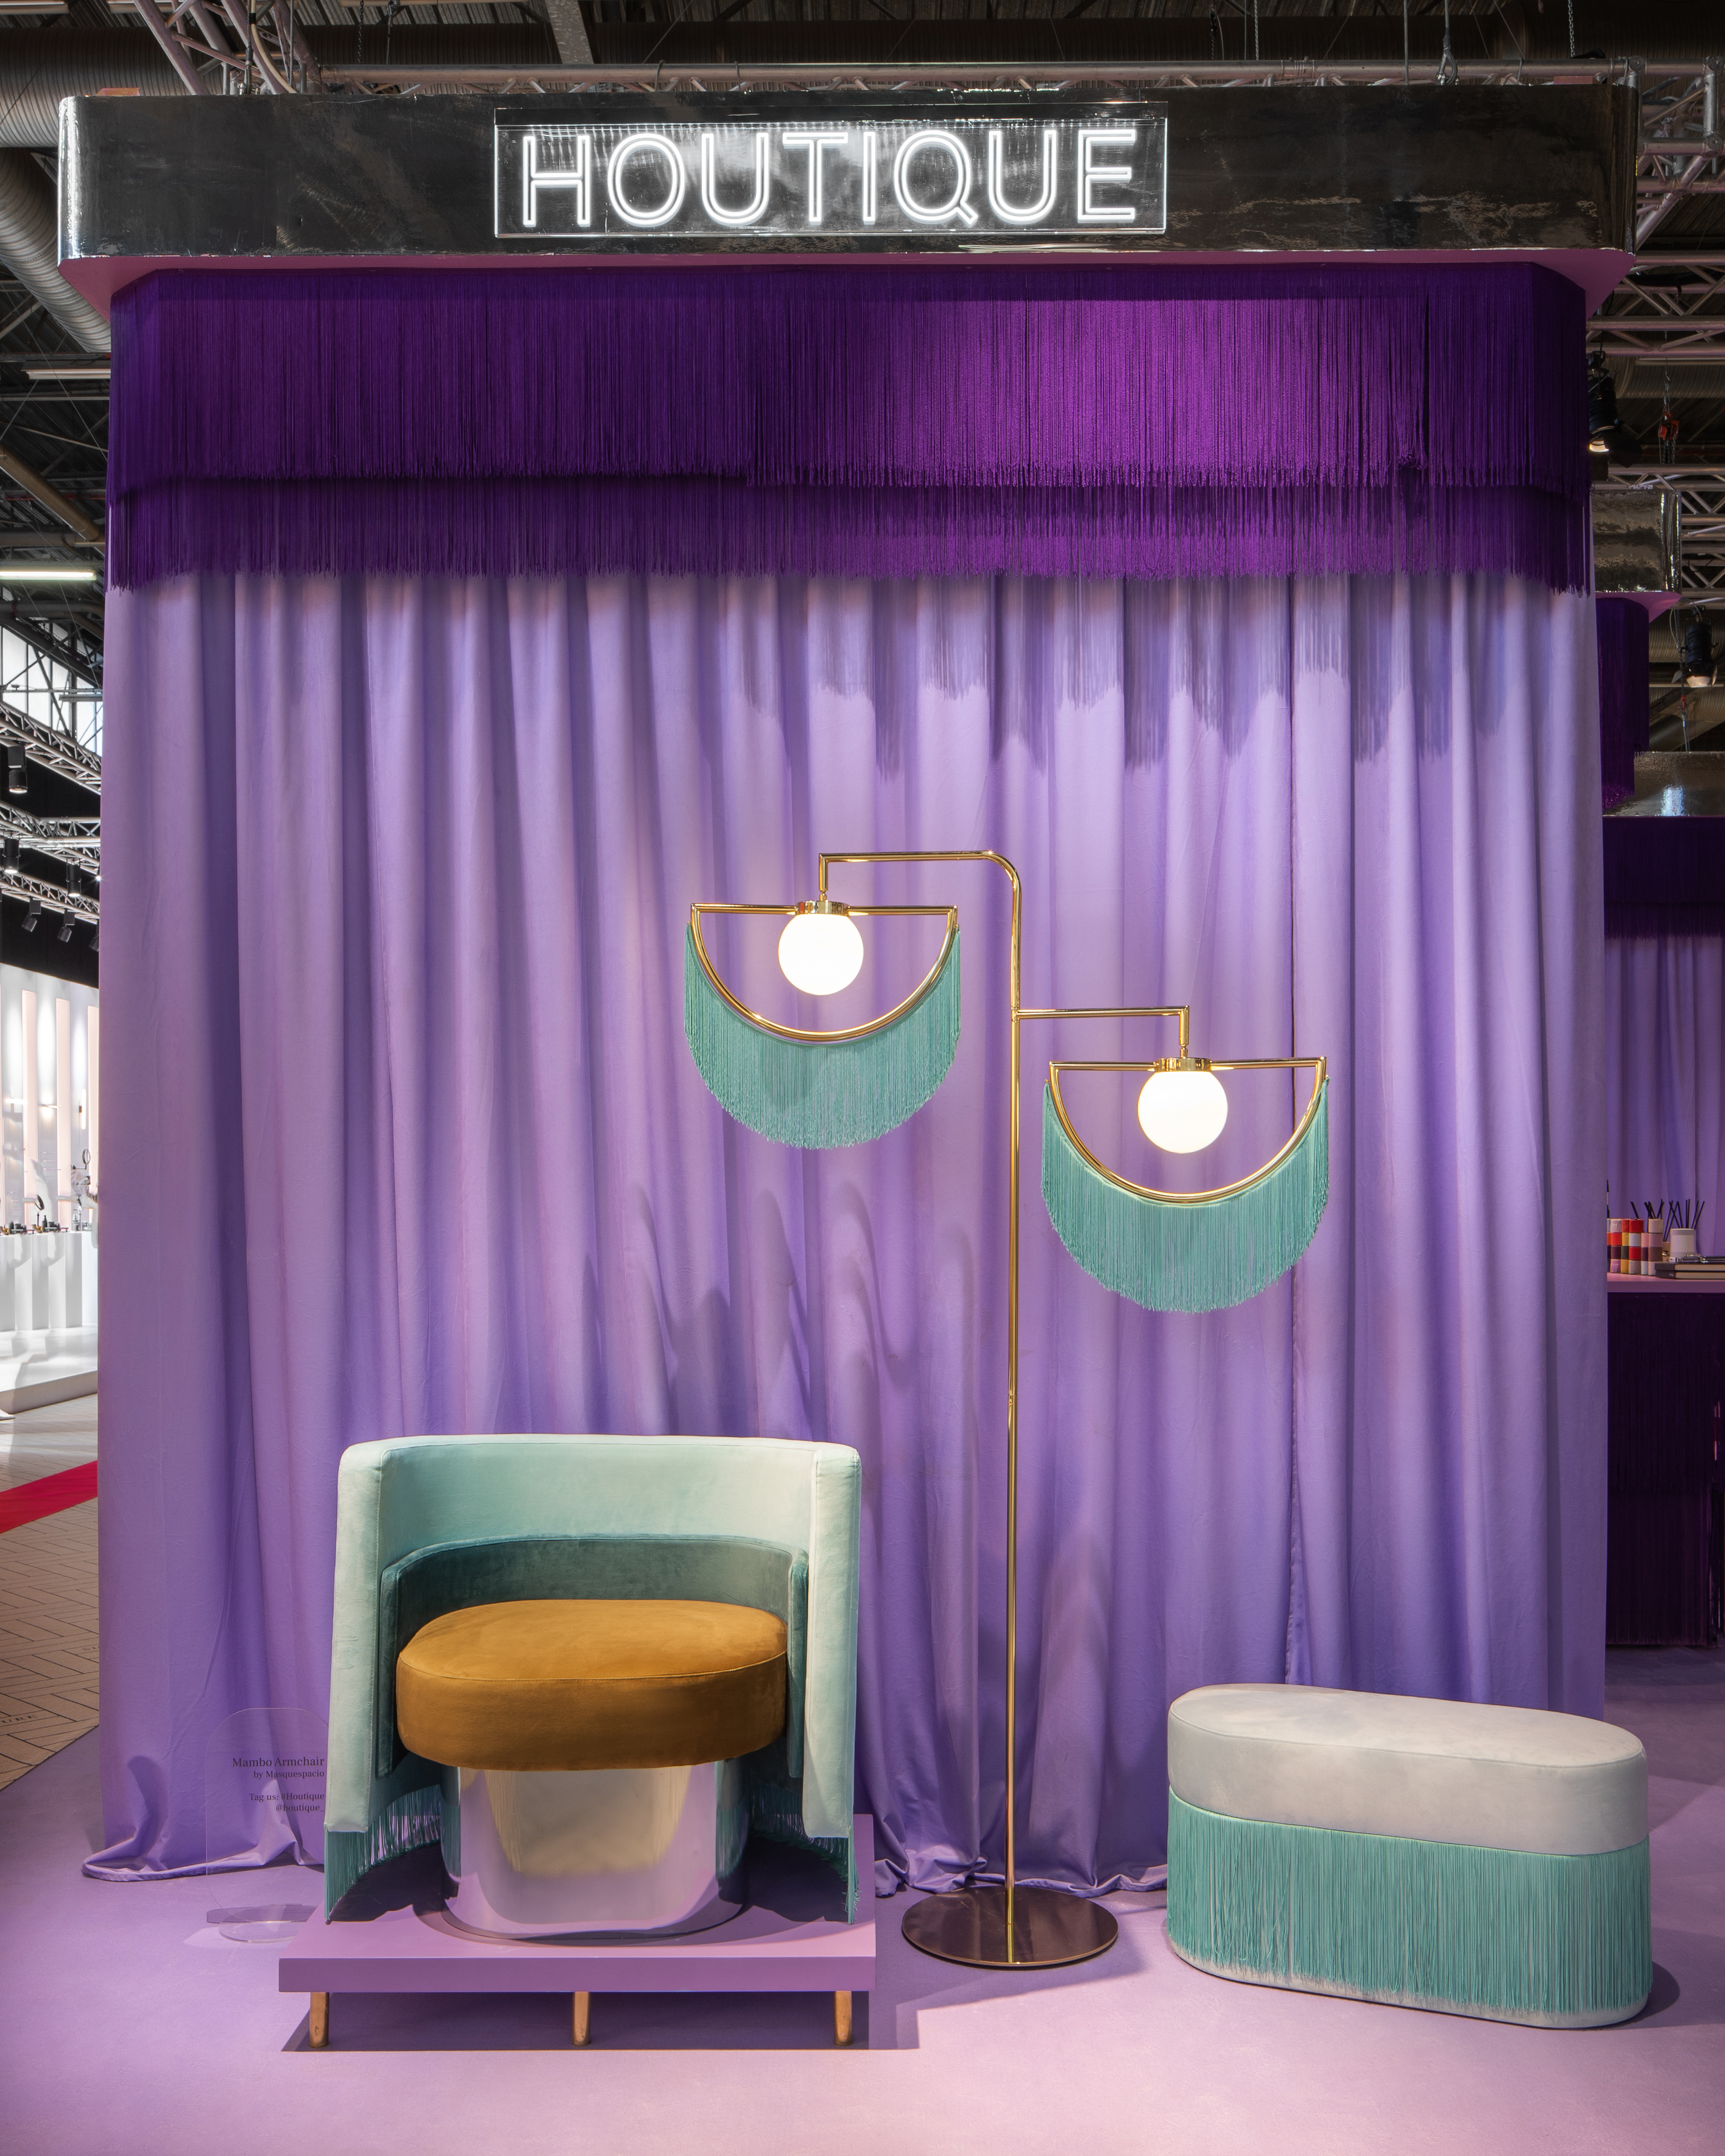 Maison&Objet 2019, Houtique booth